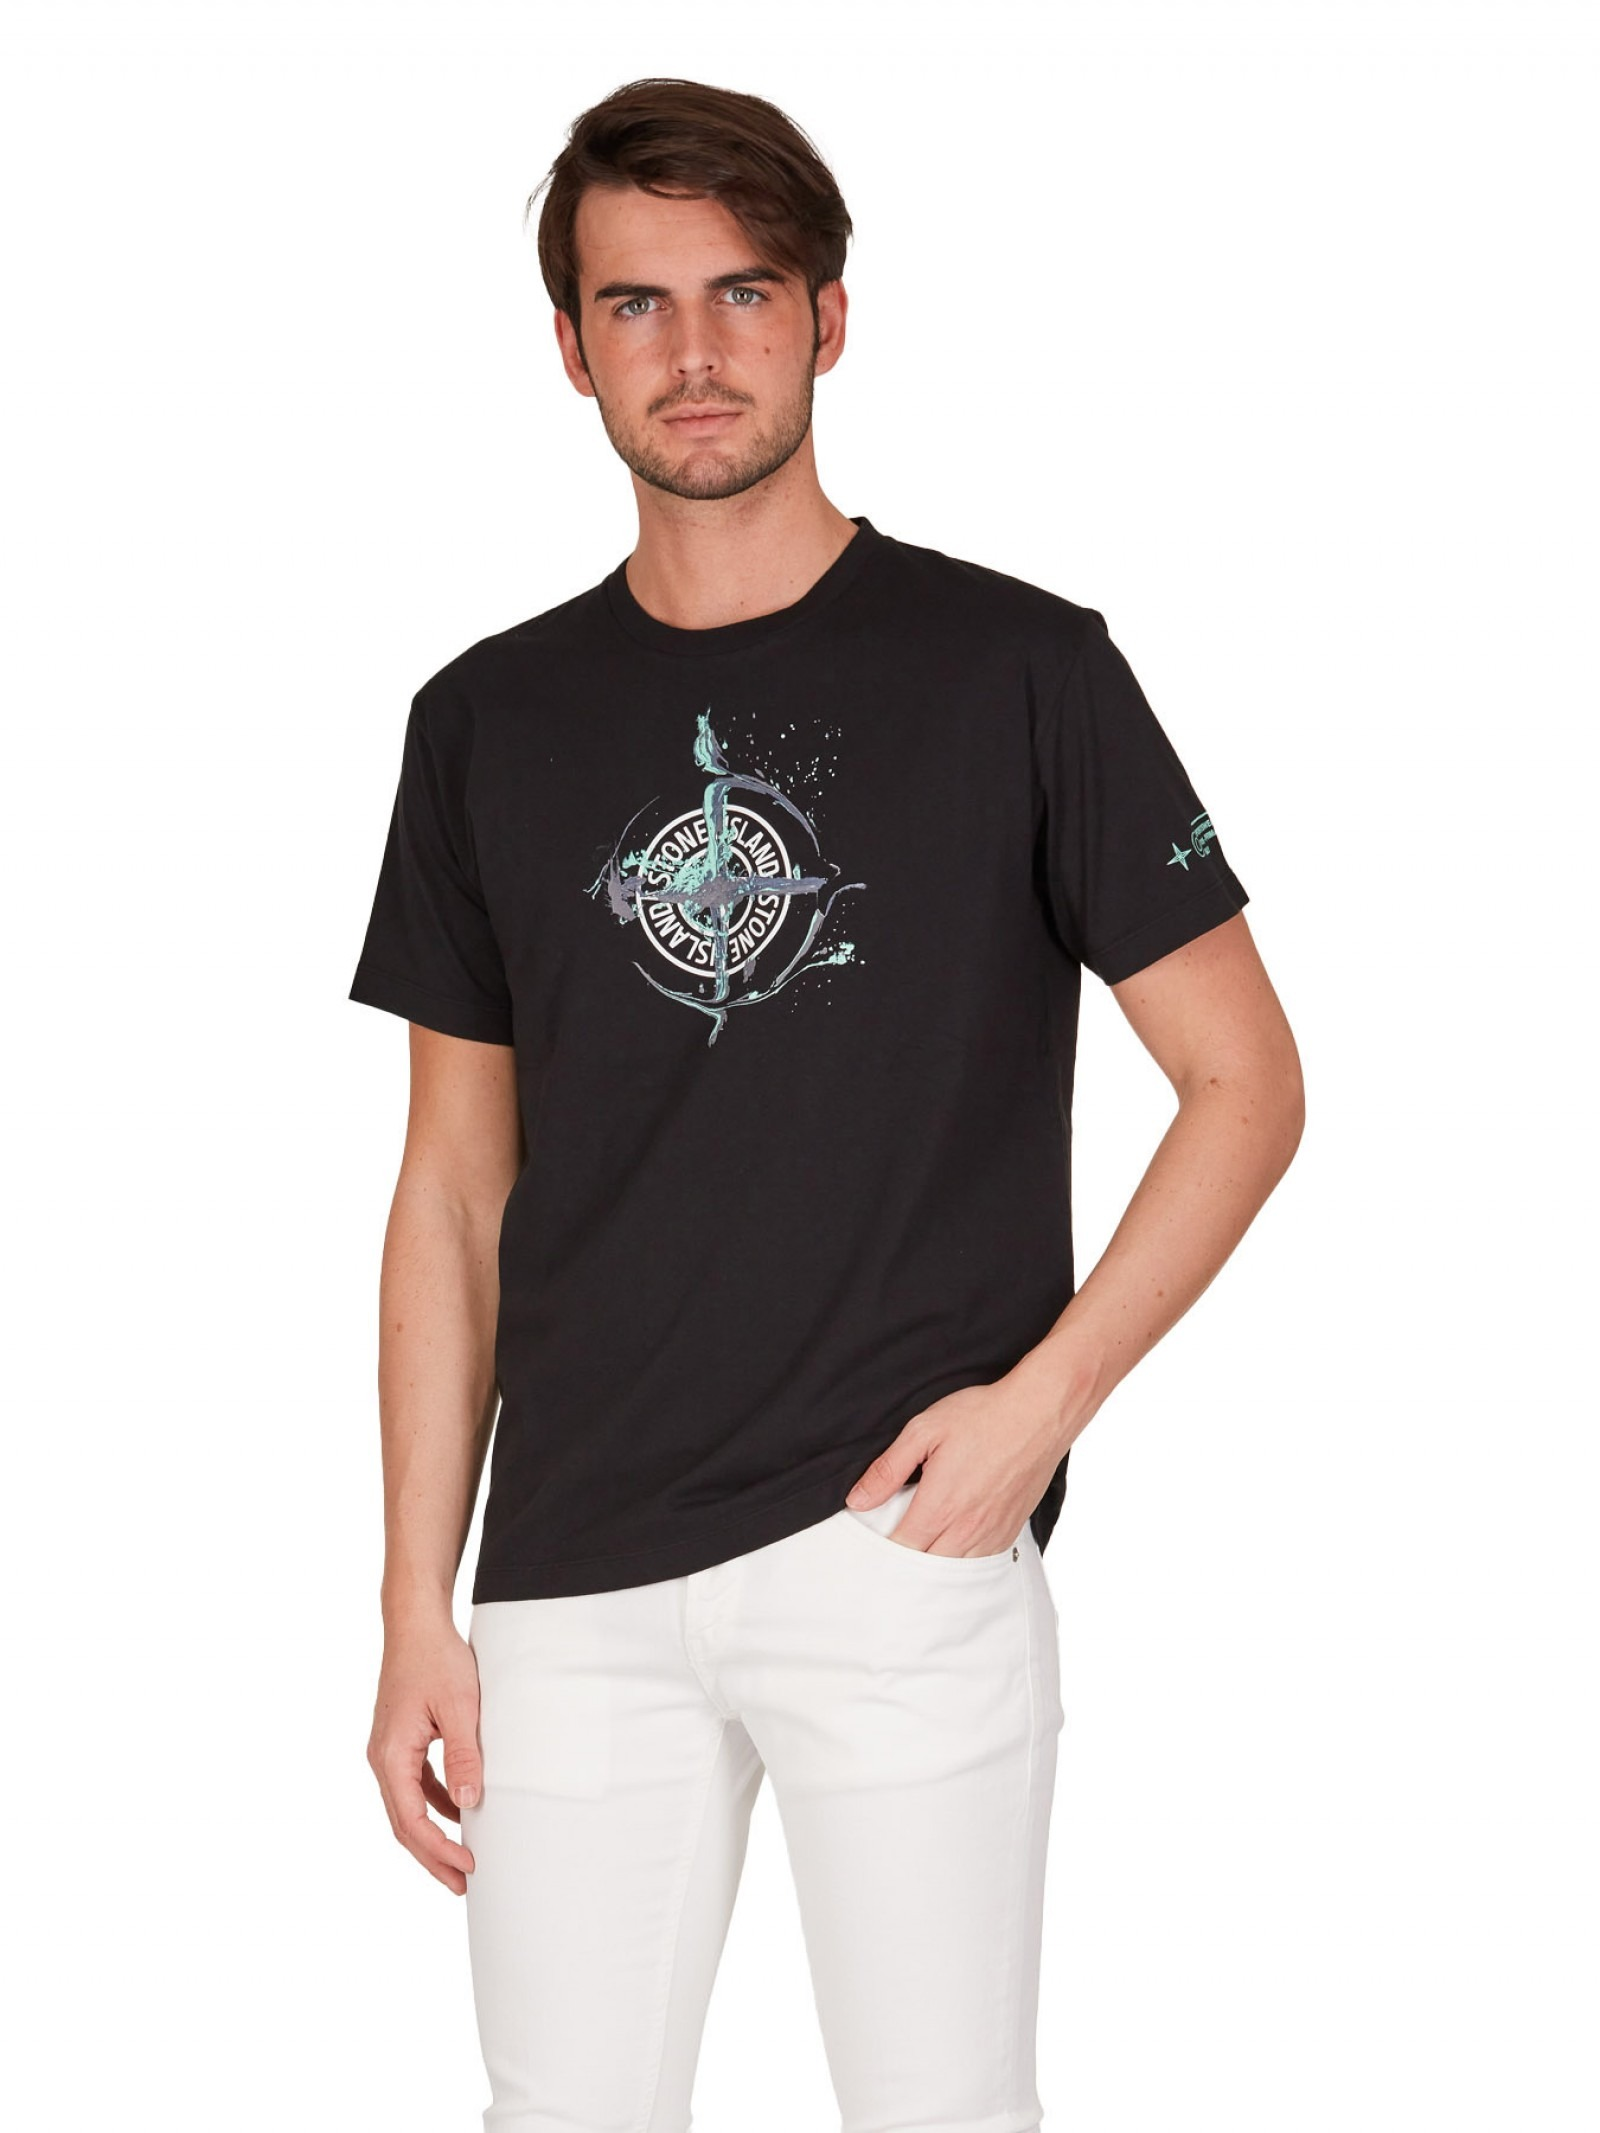 Stone Island - T shirt nera in jersey con stampa - E9021 - 2NS83-V0029